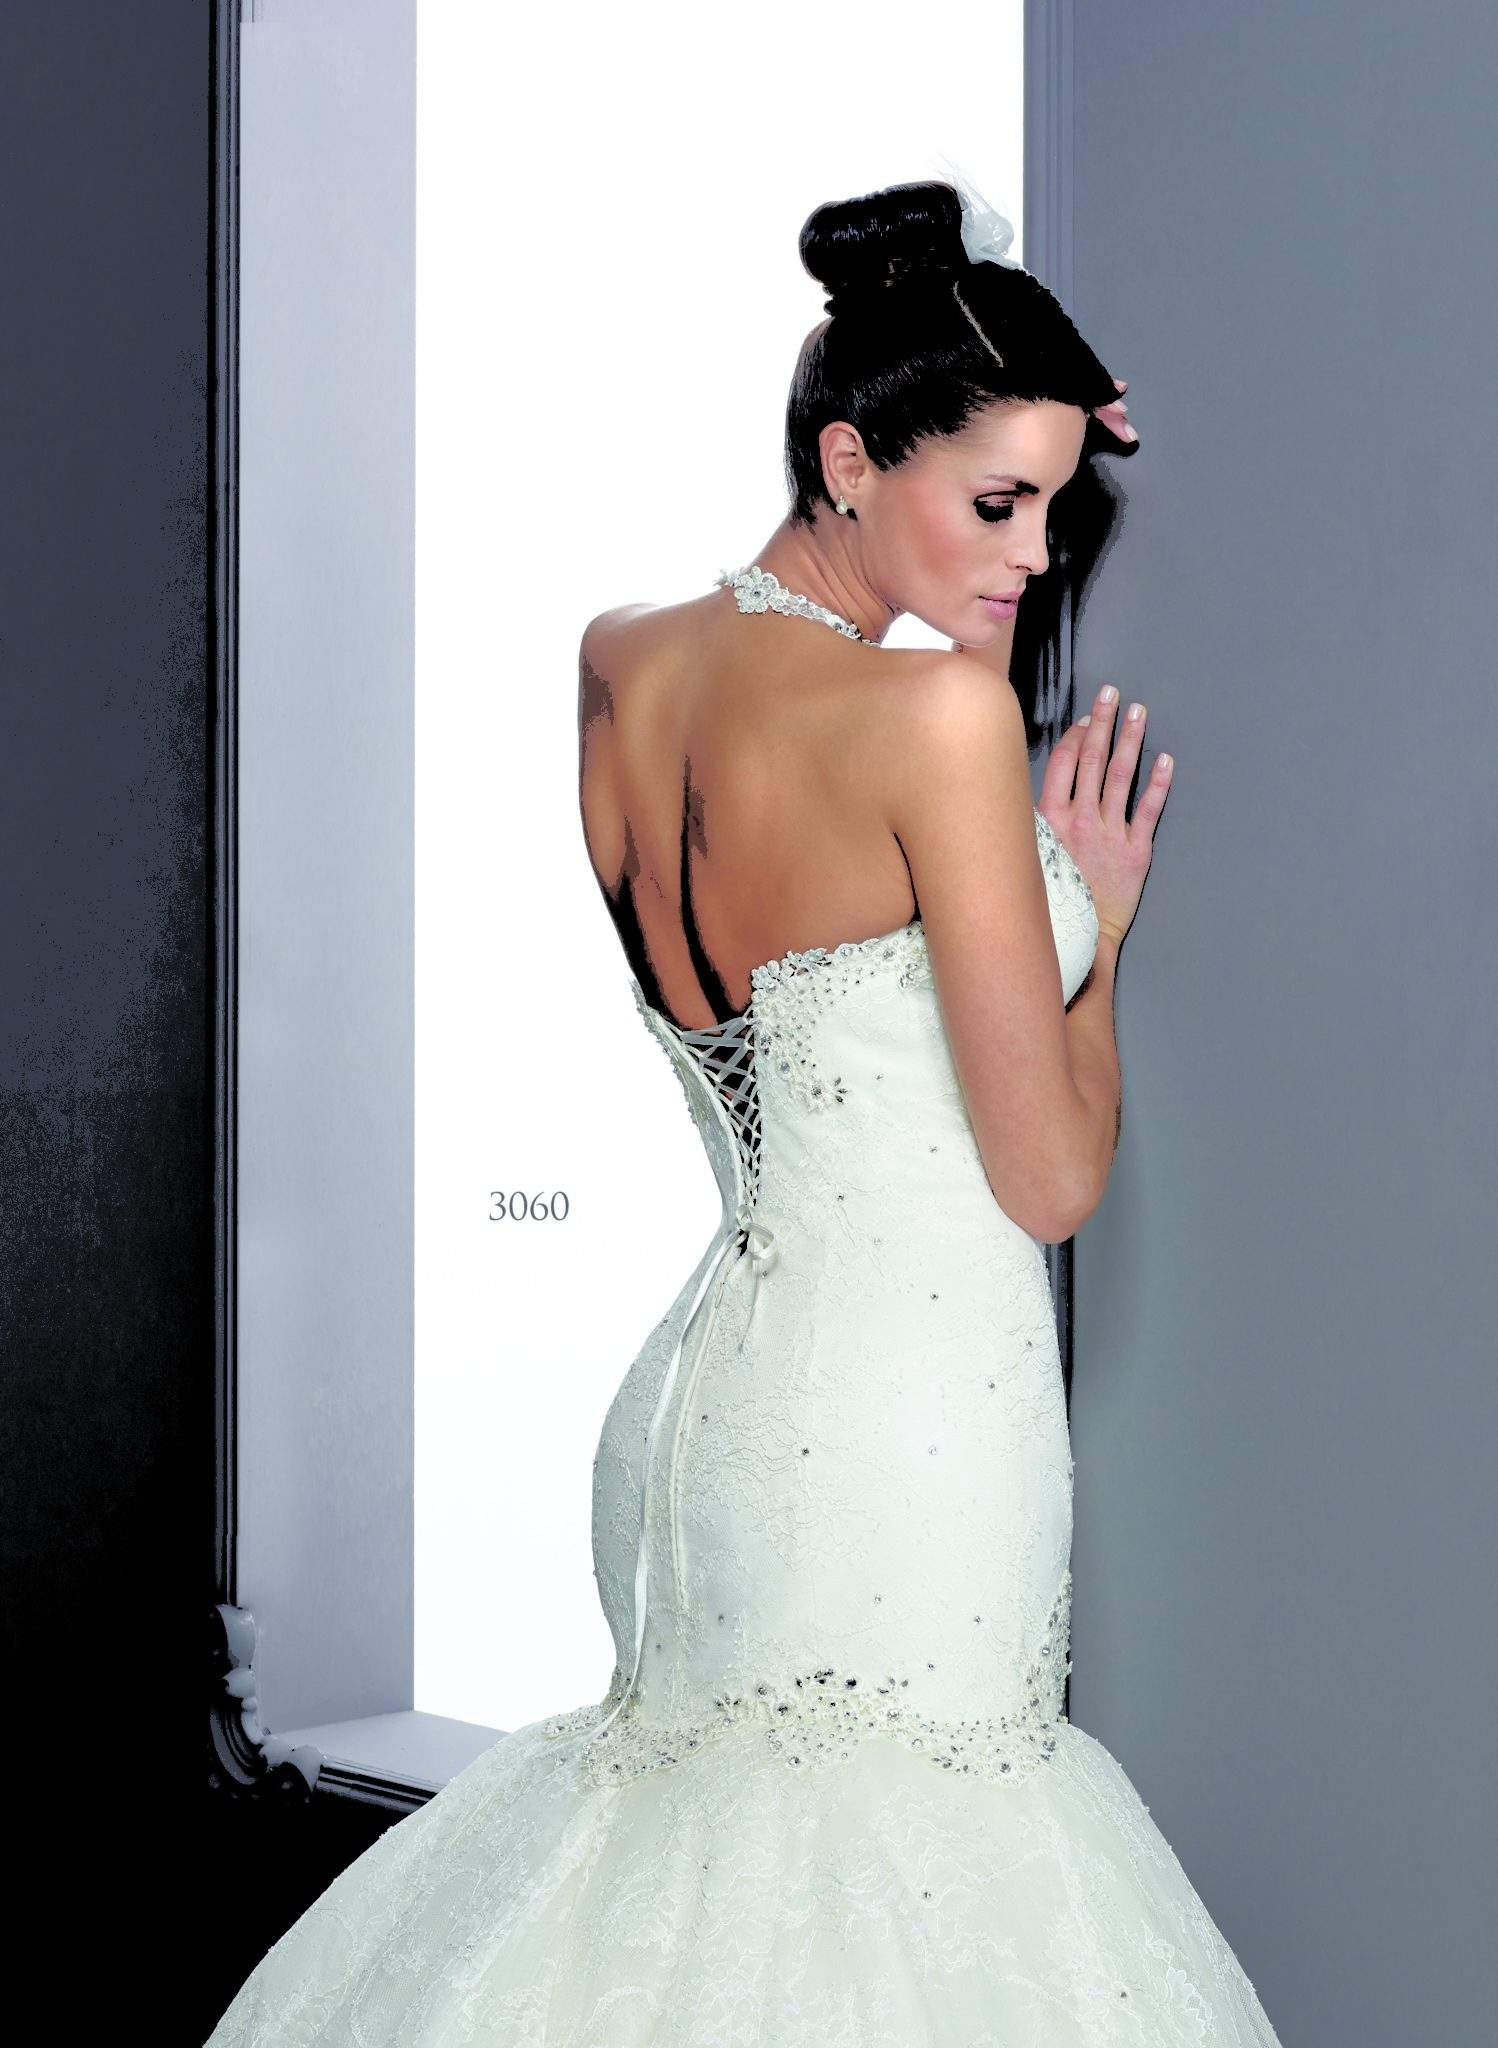 Halter Wedding Dresses - Darius Cordell Fashion Ltd